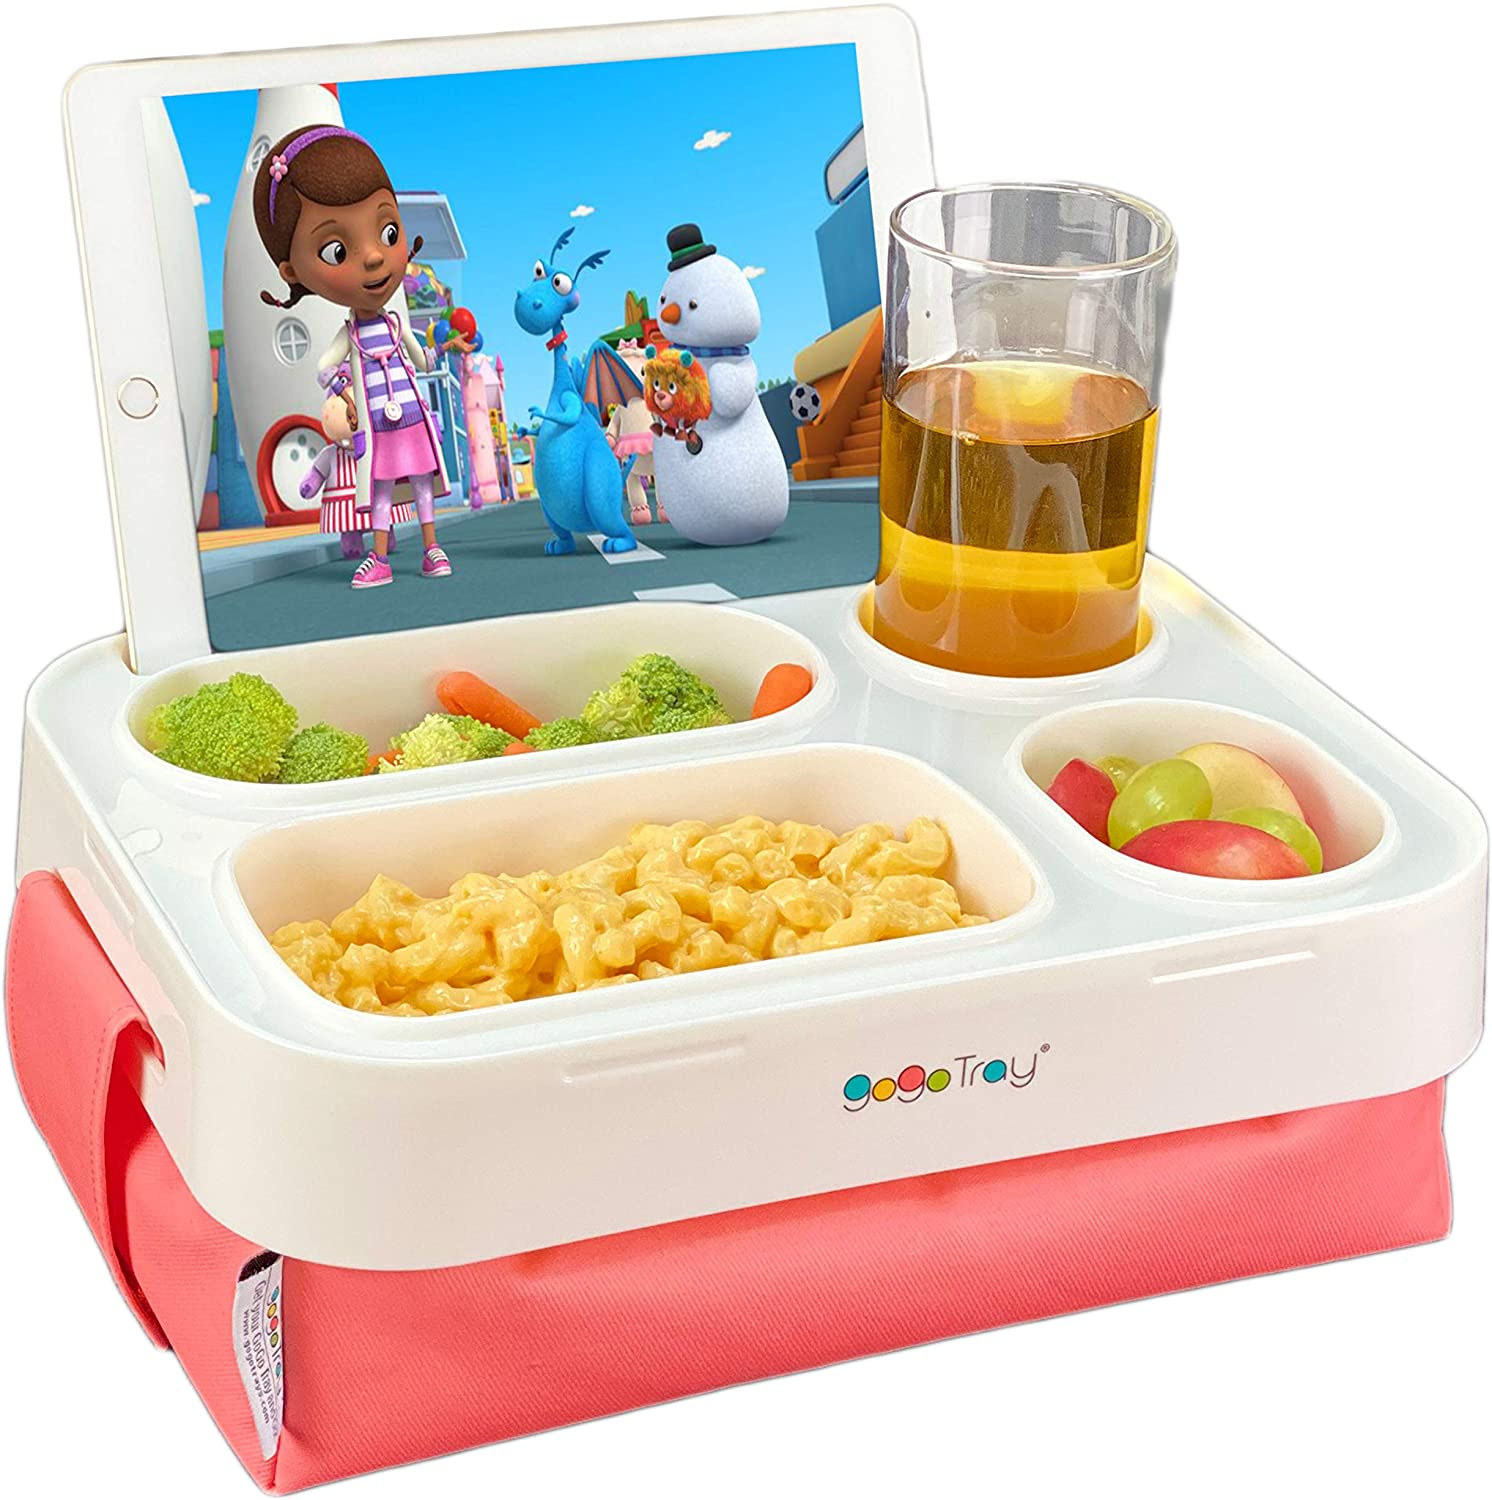 GoGoTray Portable GoGo Tray for Eating in the Car, On-The-Go or in Bed with Deep Built-in Bowls and Detachable Lap Cushion (Sundance)